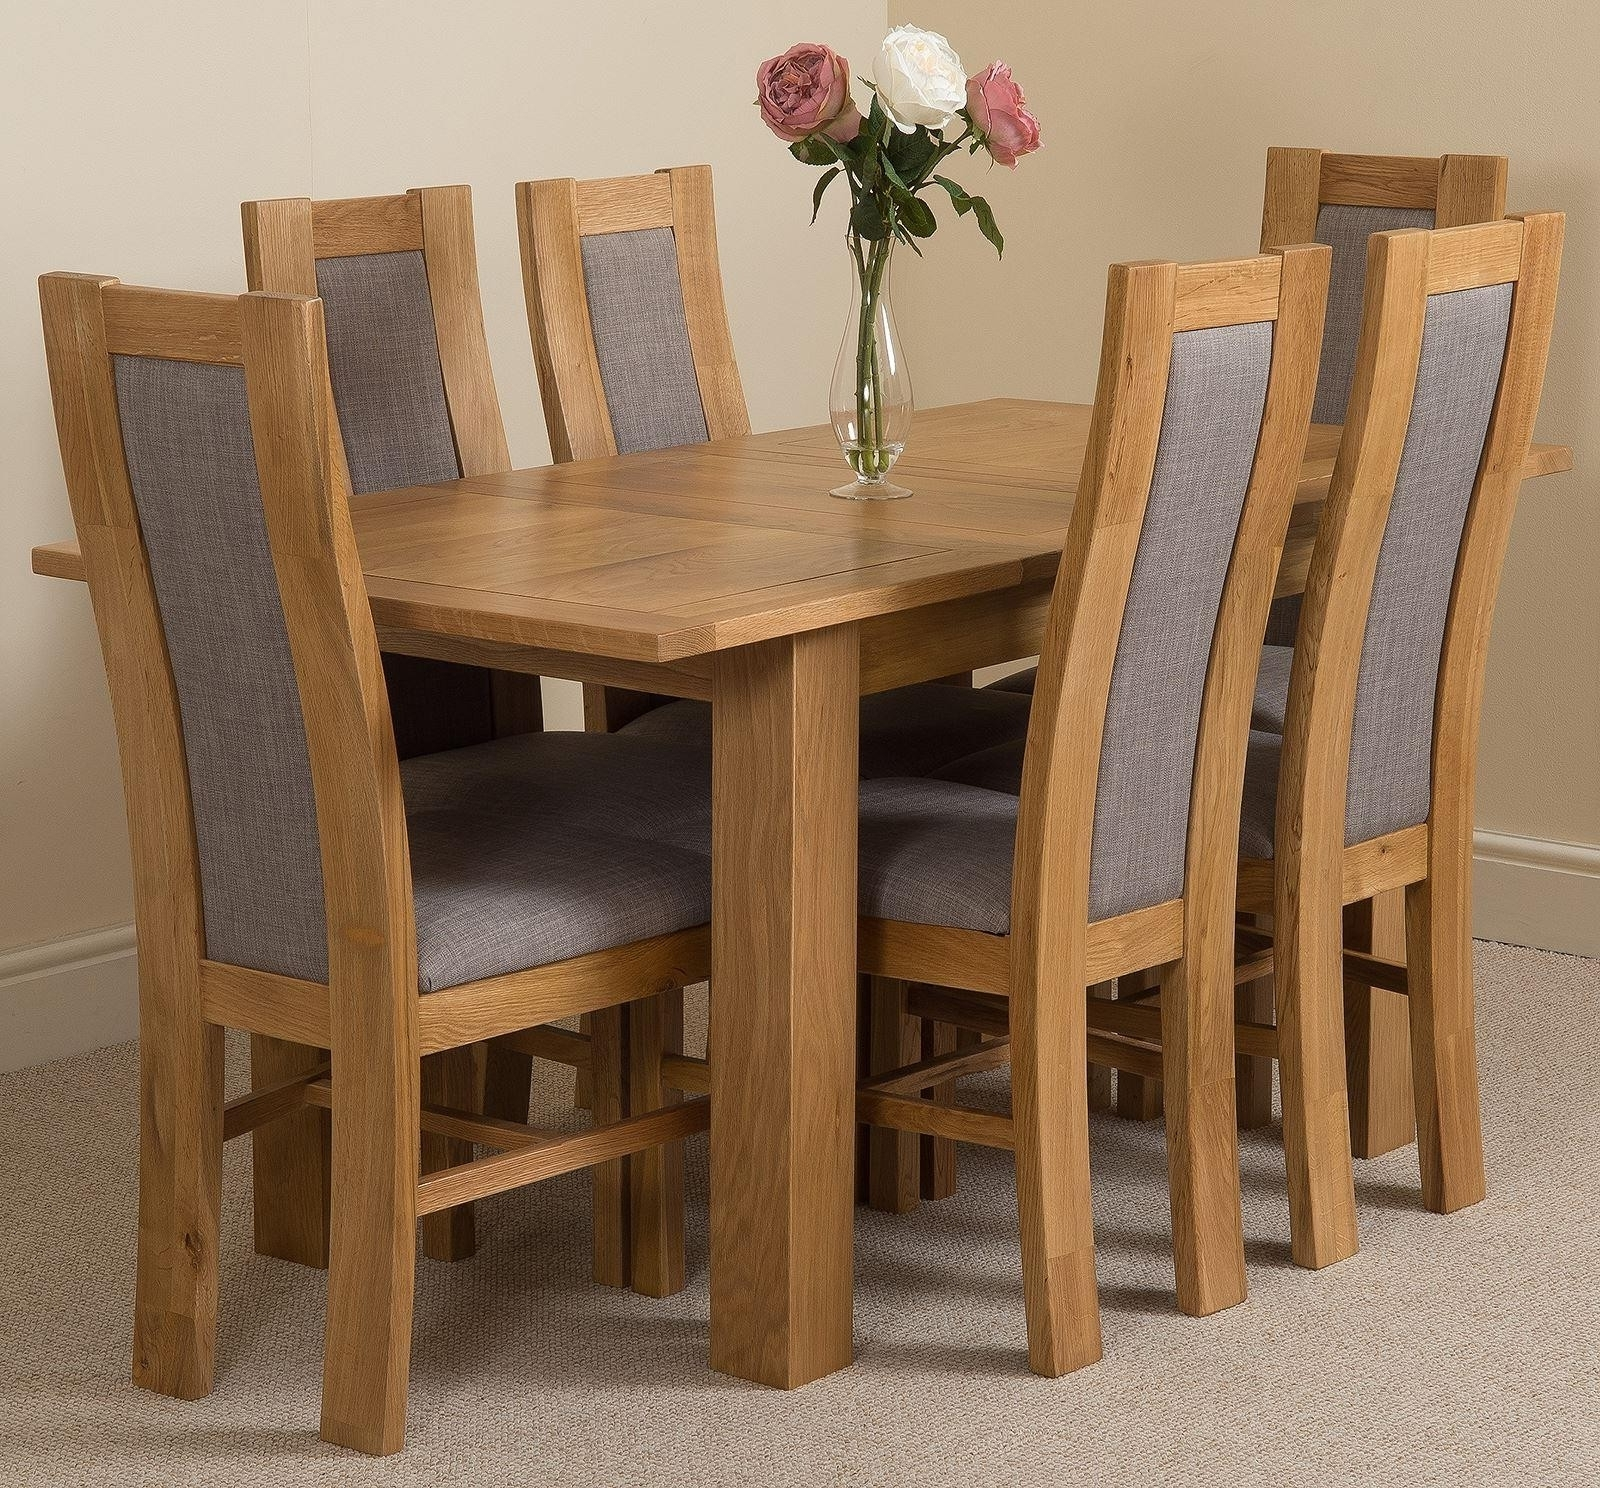 Oak Fabric Dining Chairs Throughout Most Recent Hampton Dining Set With 6 Stanford Chairs (View 20 of 25)